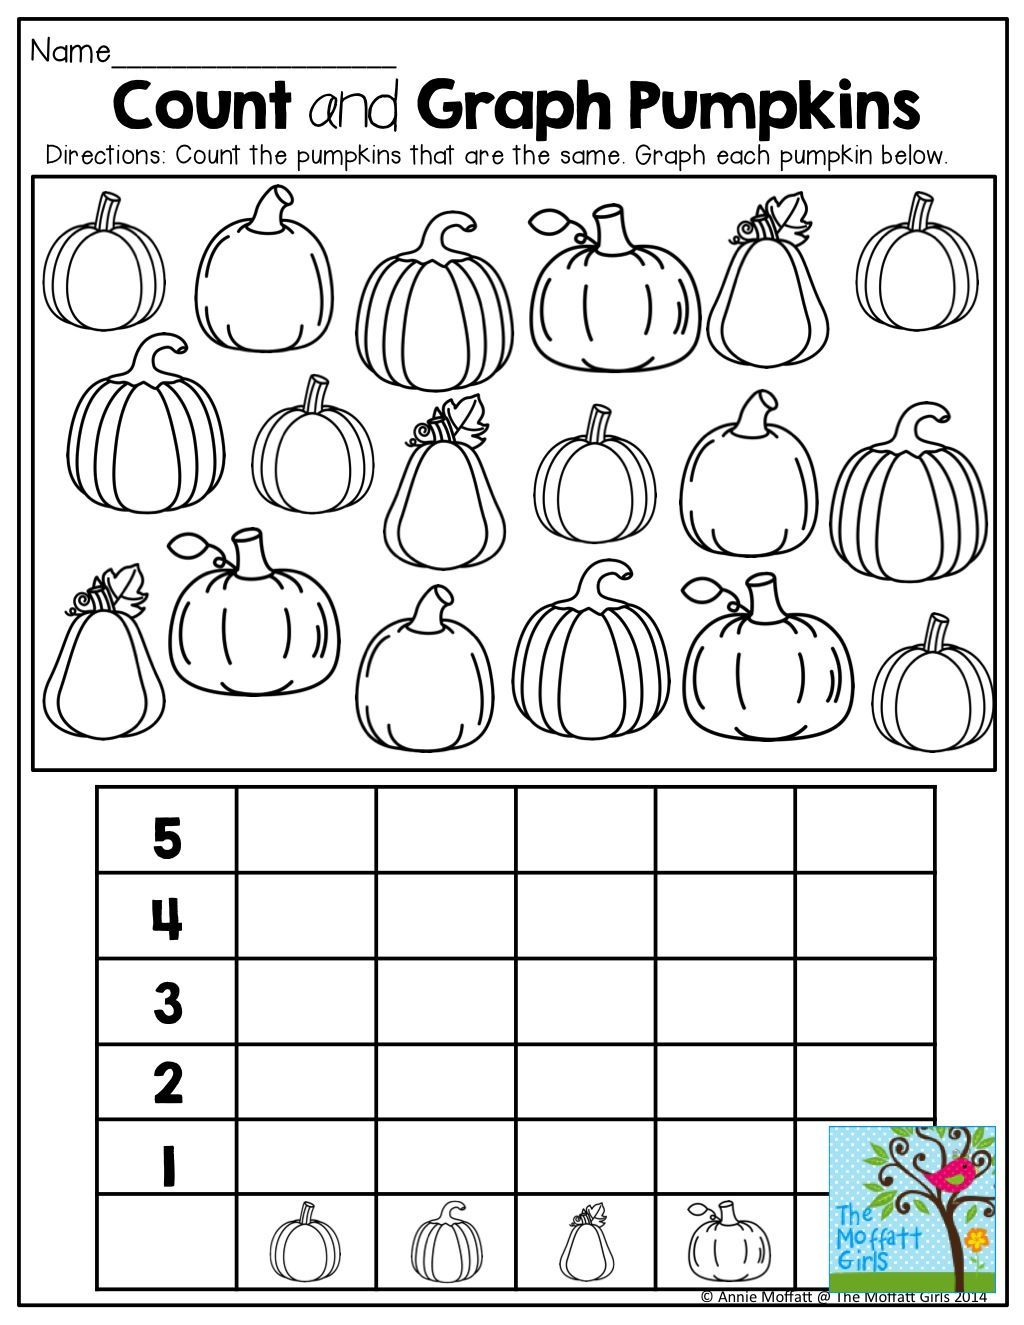 Worksheet Graph Art Worksheets Grass Fedjp Worksheet